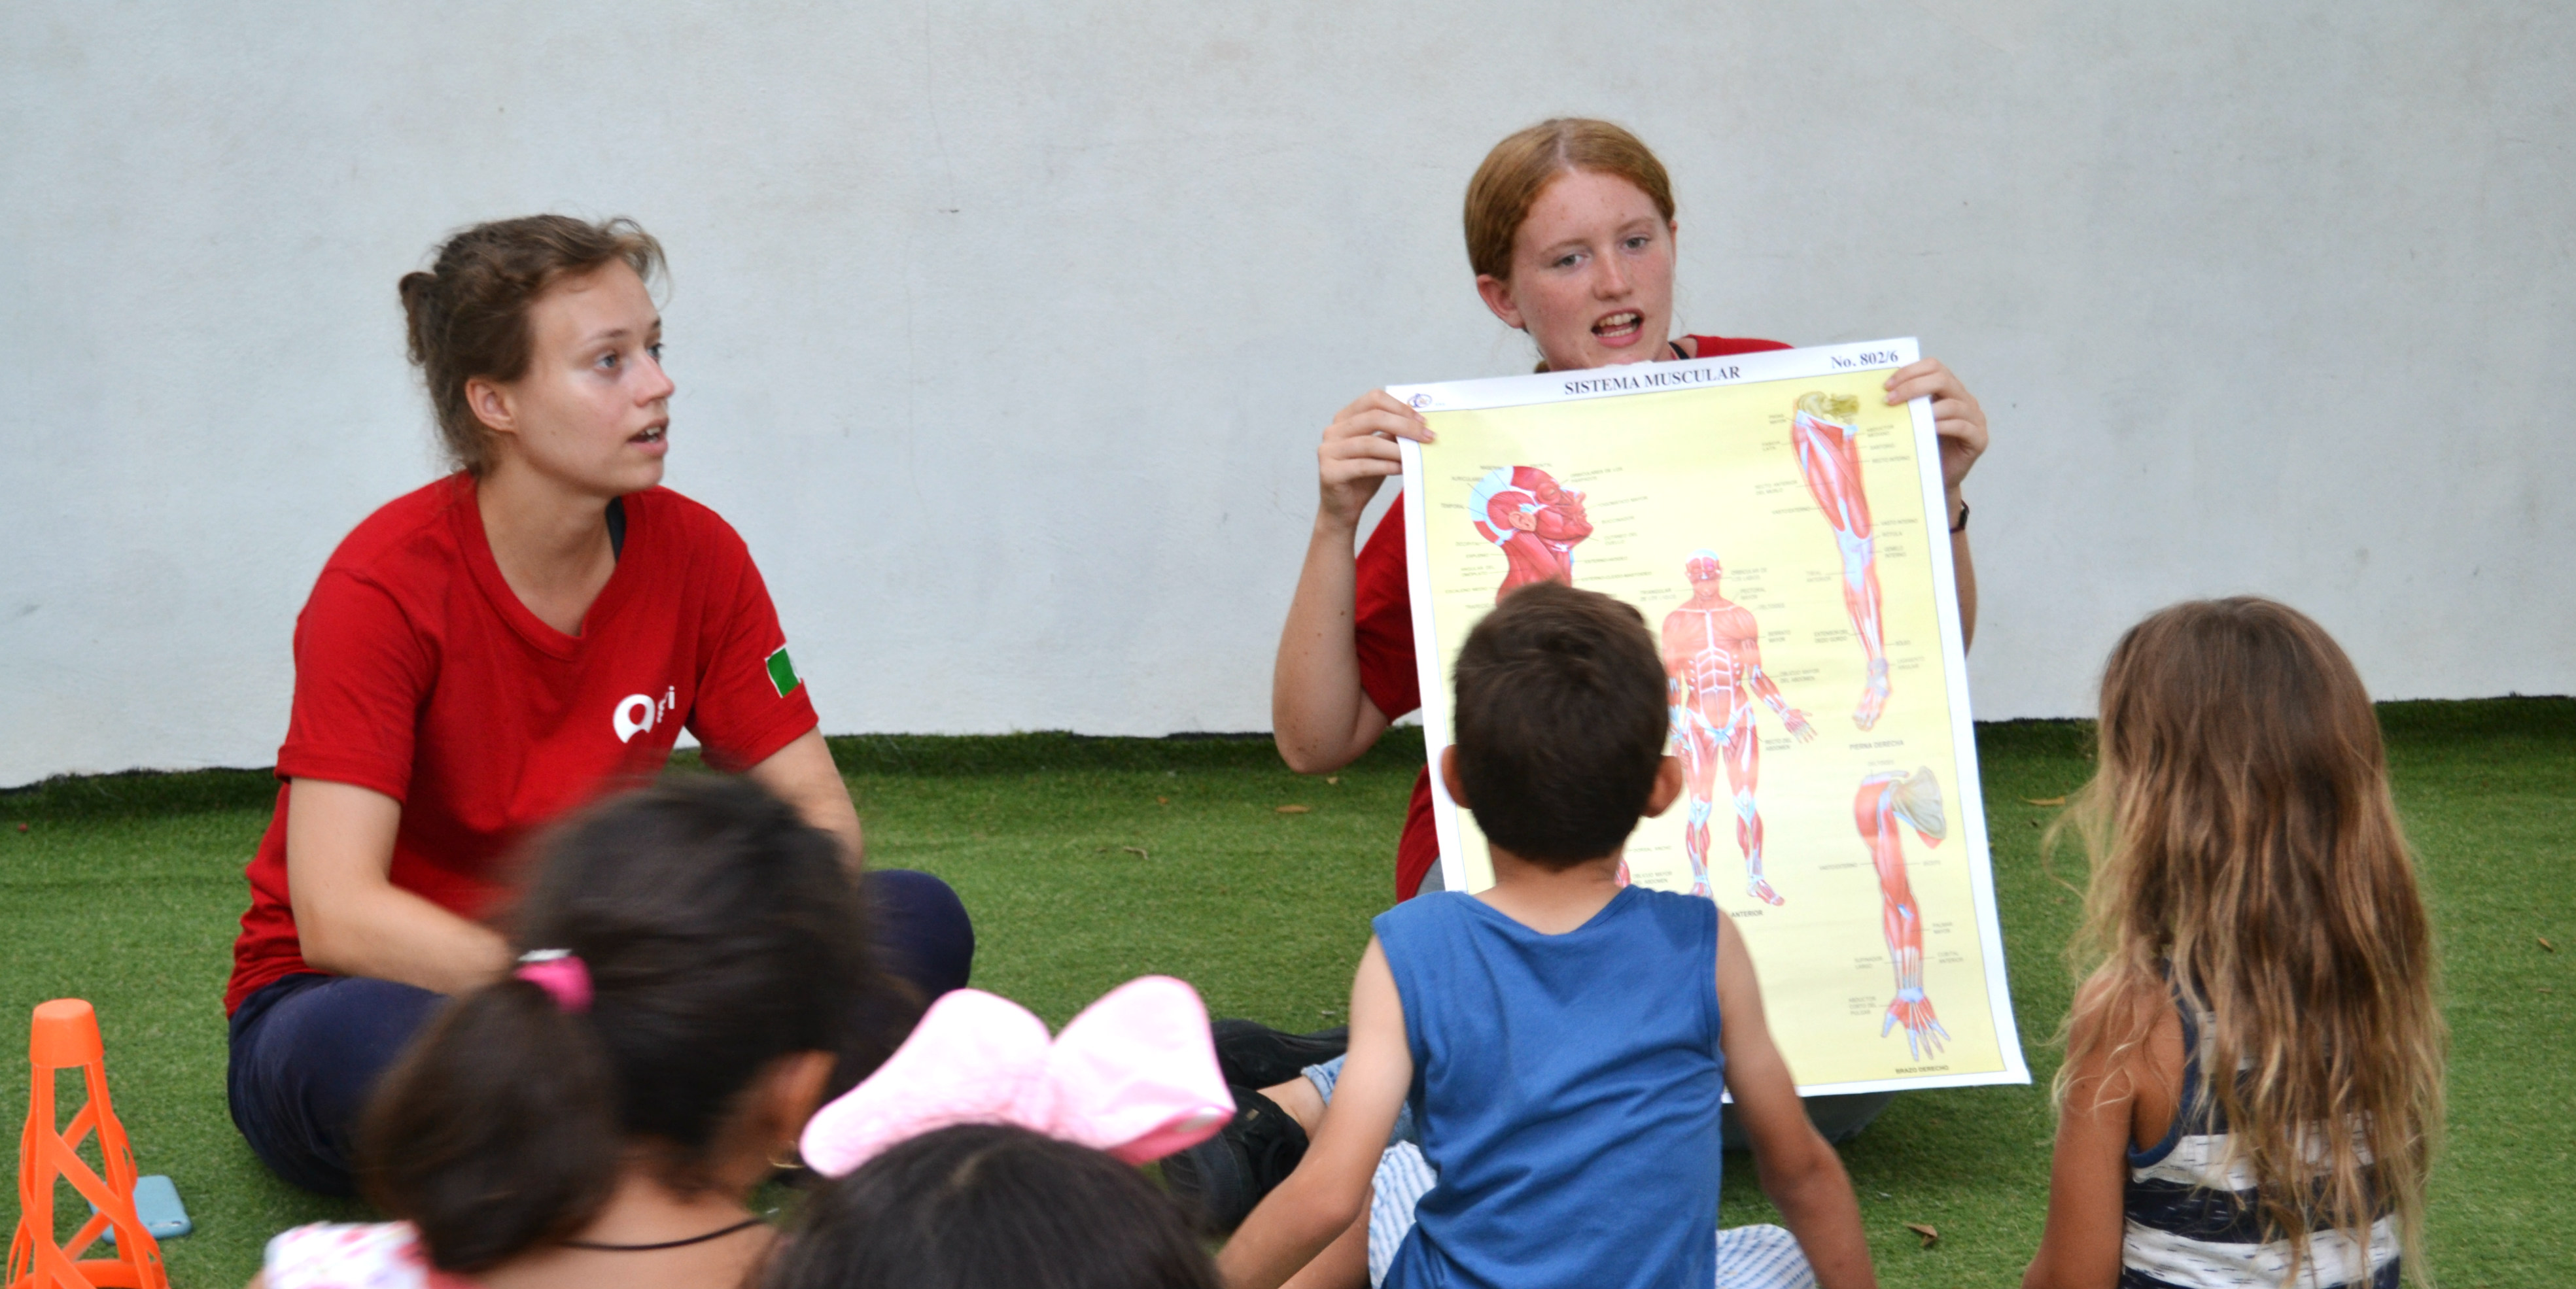 A GVI participant leads a lesson on the different parts of the body while volunteering with children in Mexico.